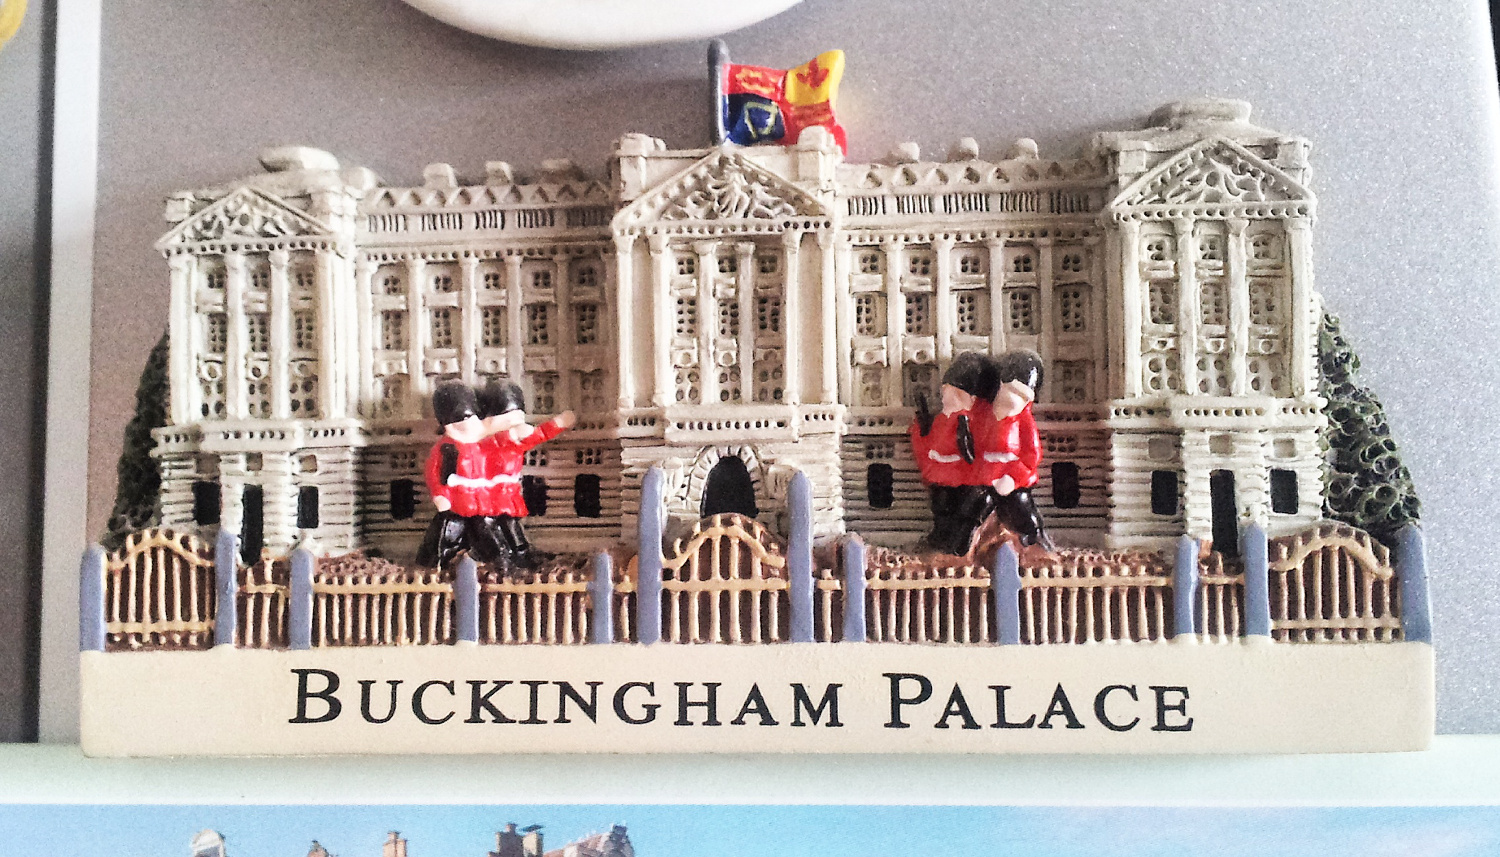 Buckingham Palace - fridge magnet